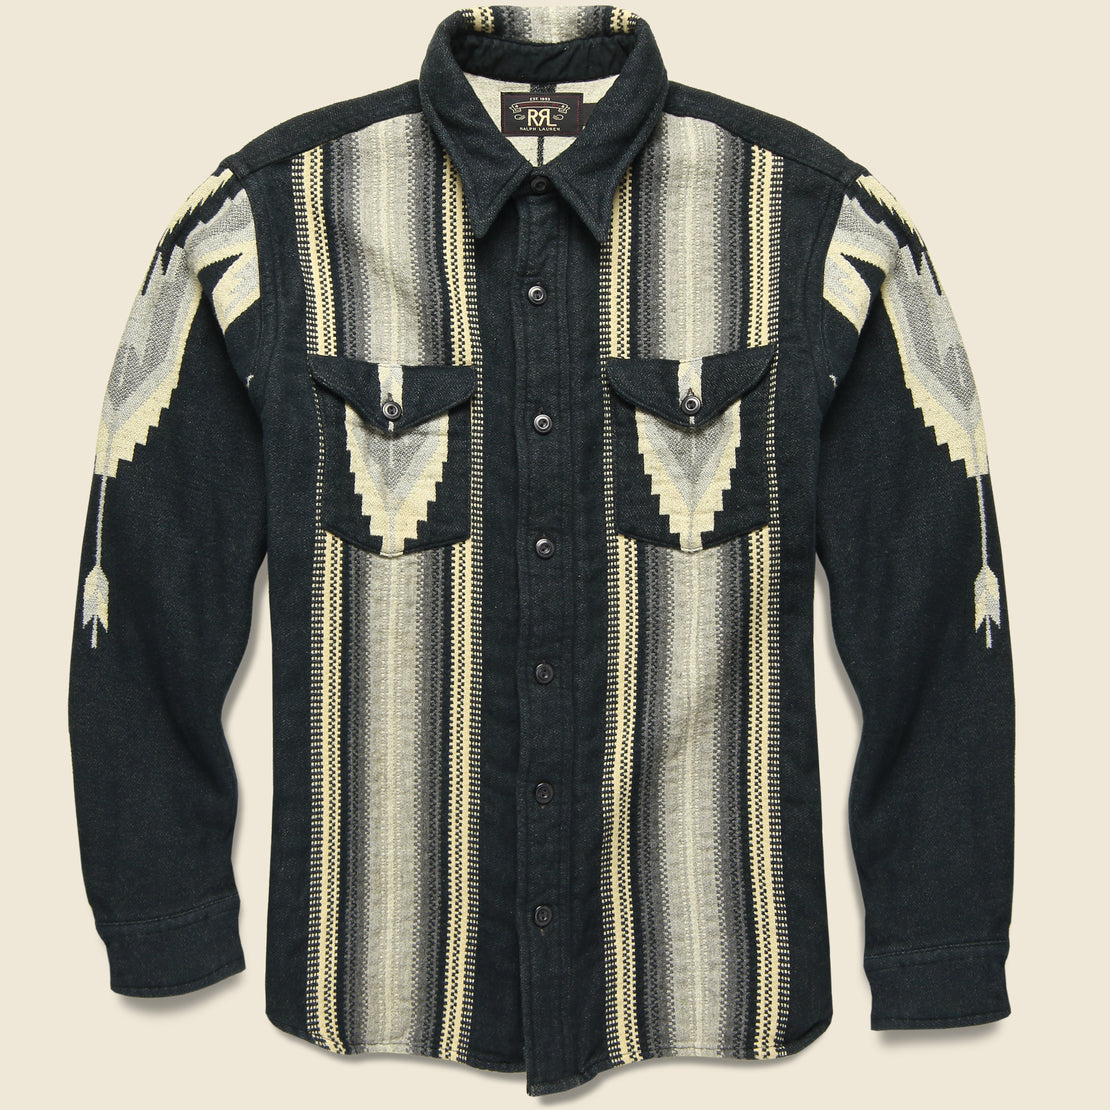 RRL Southwestern Brushed Jacquard Workshirt - Grey/Black